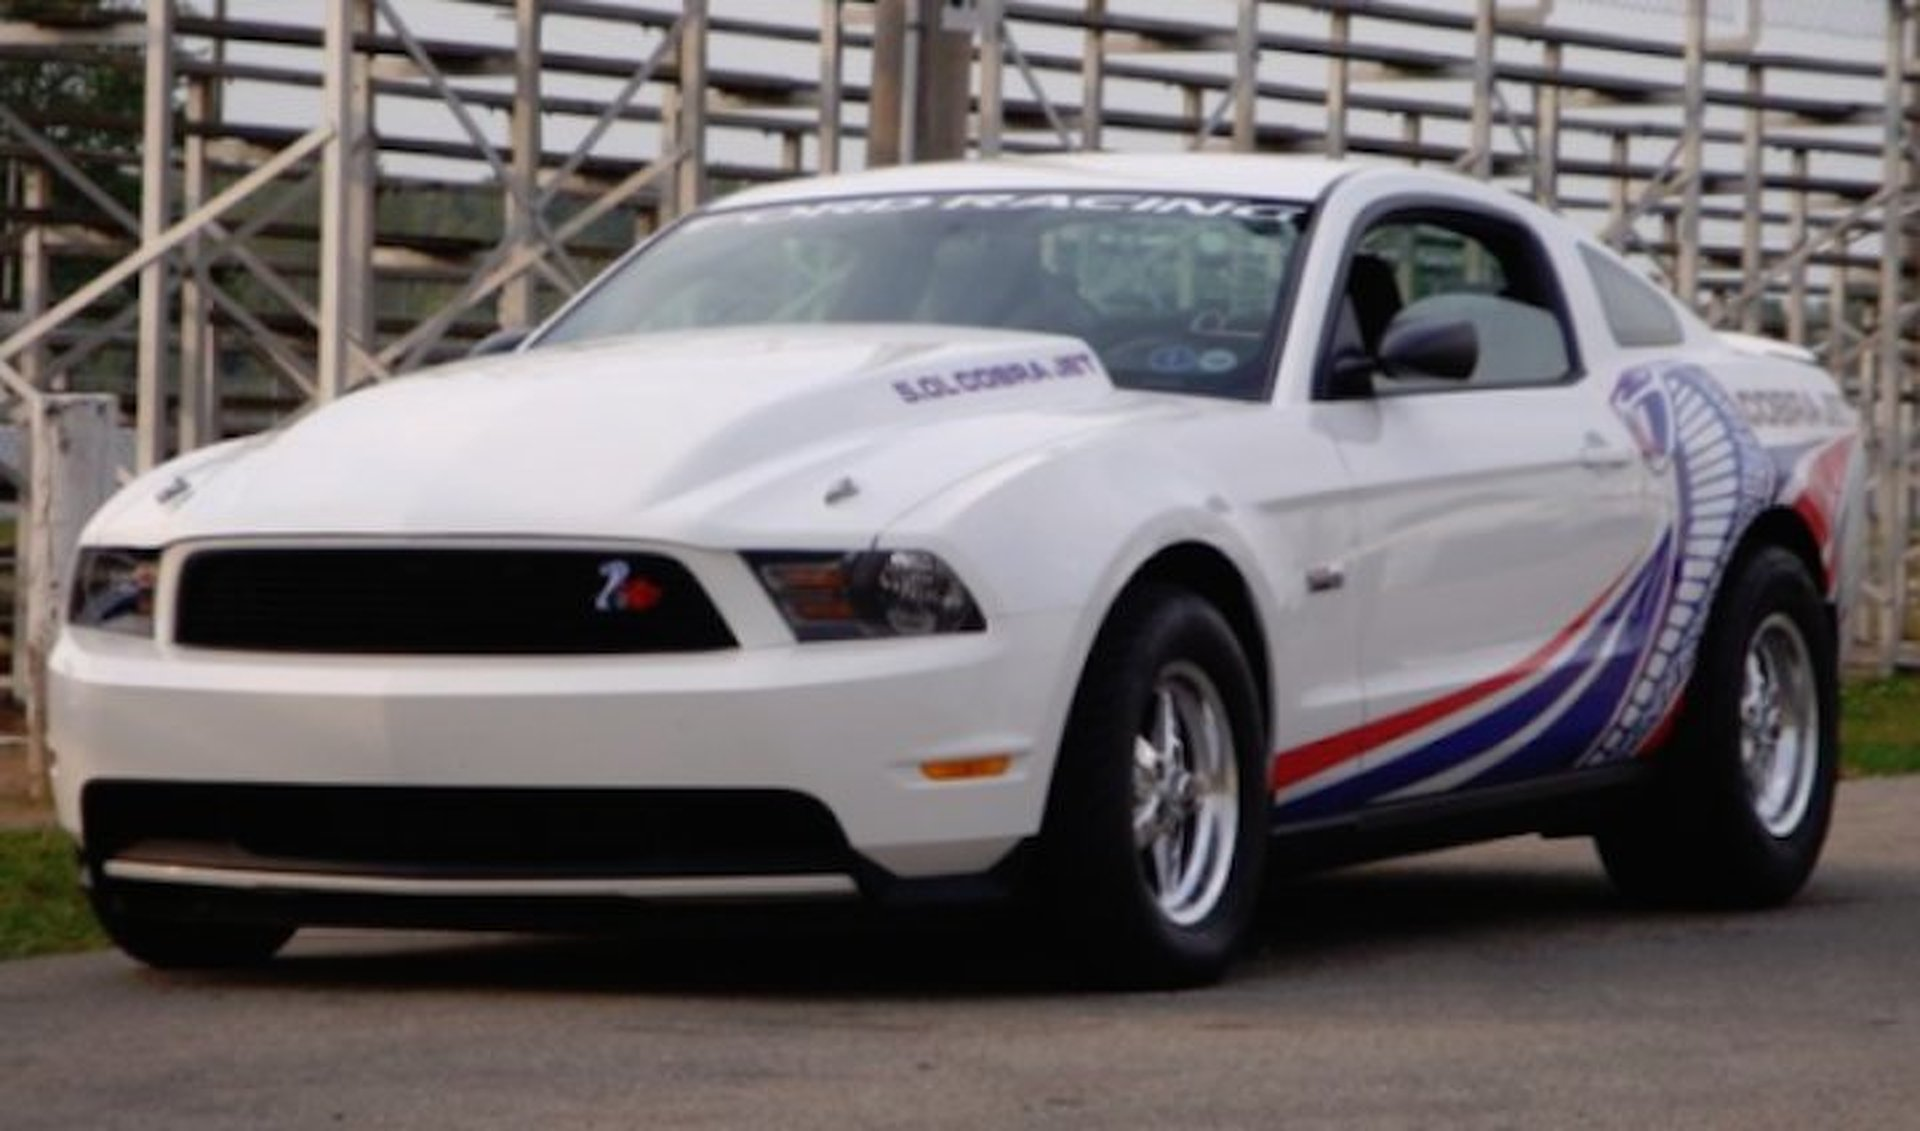 Cylinder Mustang Race Car For Sale